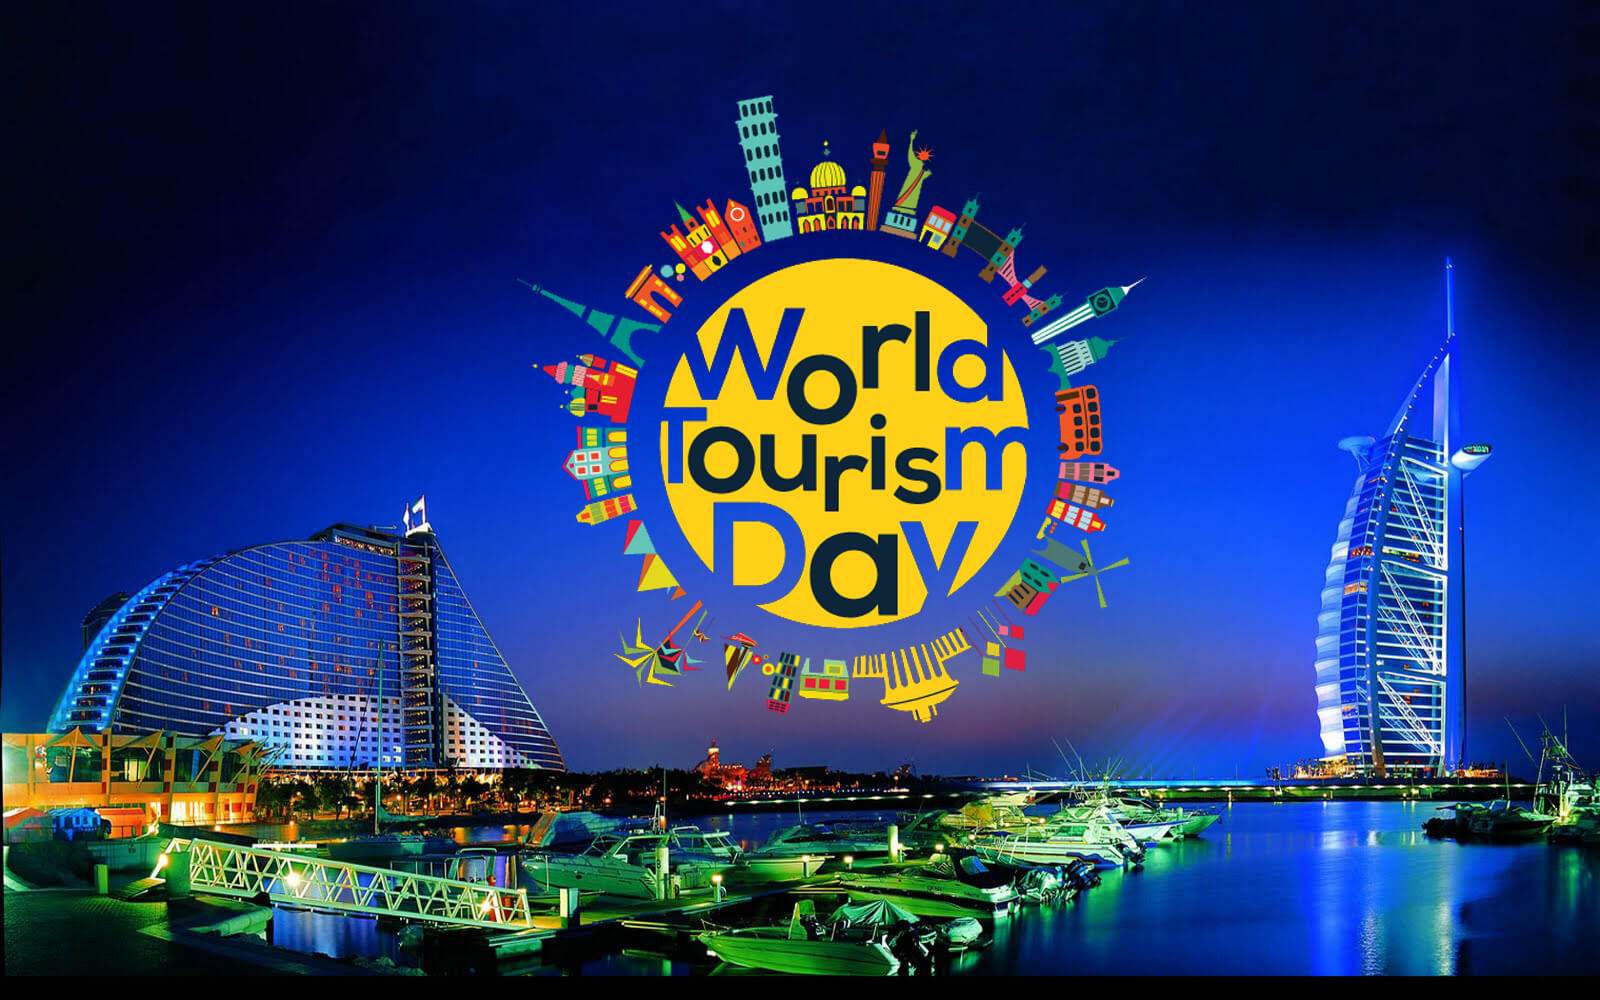 world tourism day dubai hd wallpaper